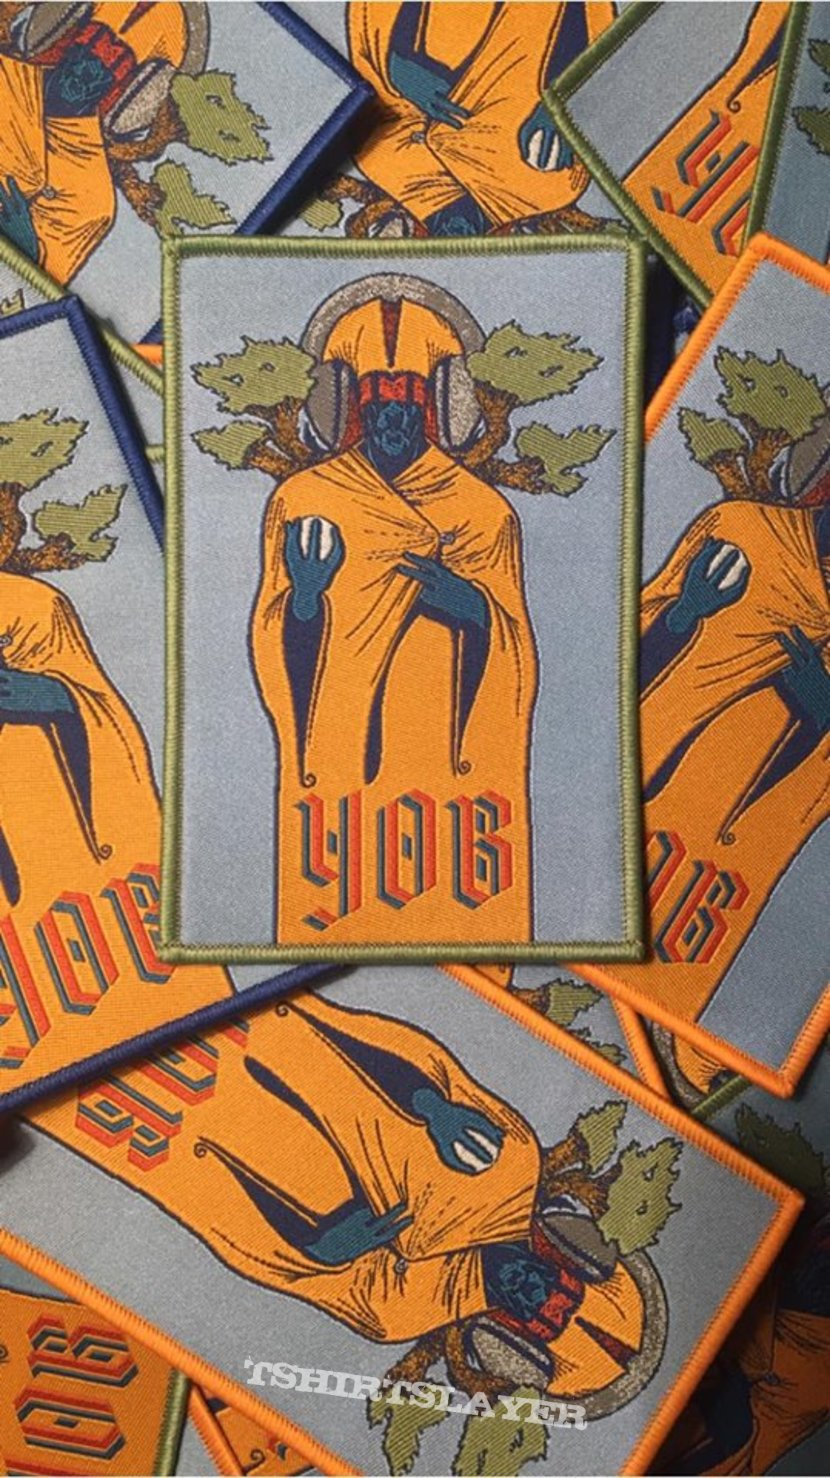 Band approved woven YOB patches